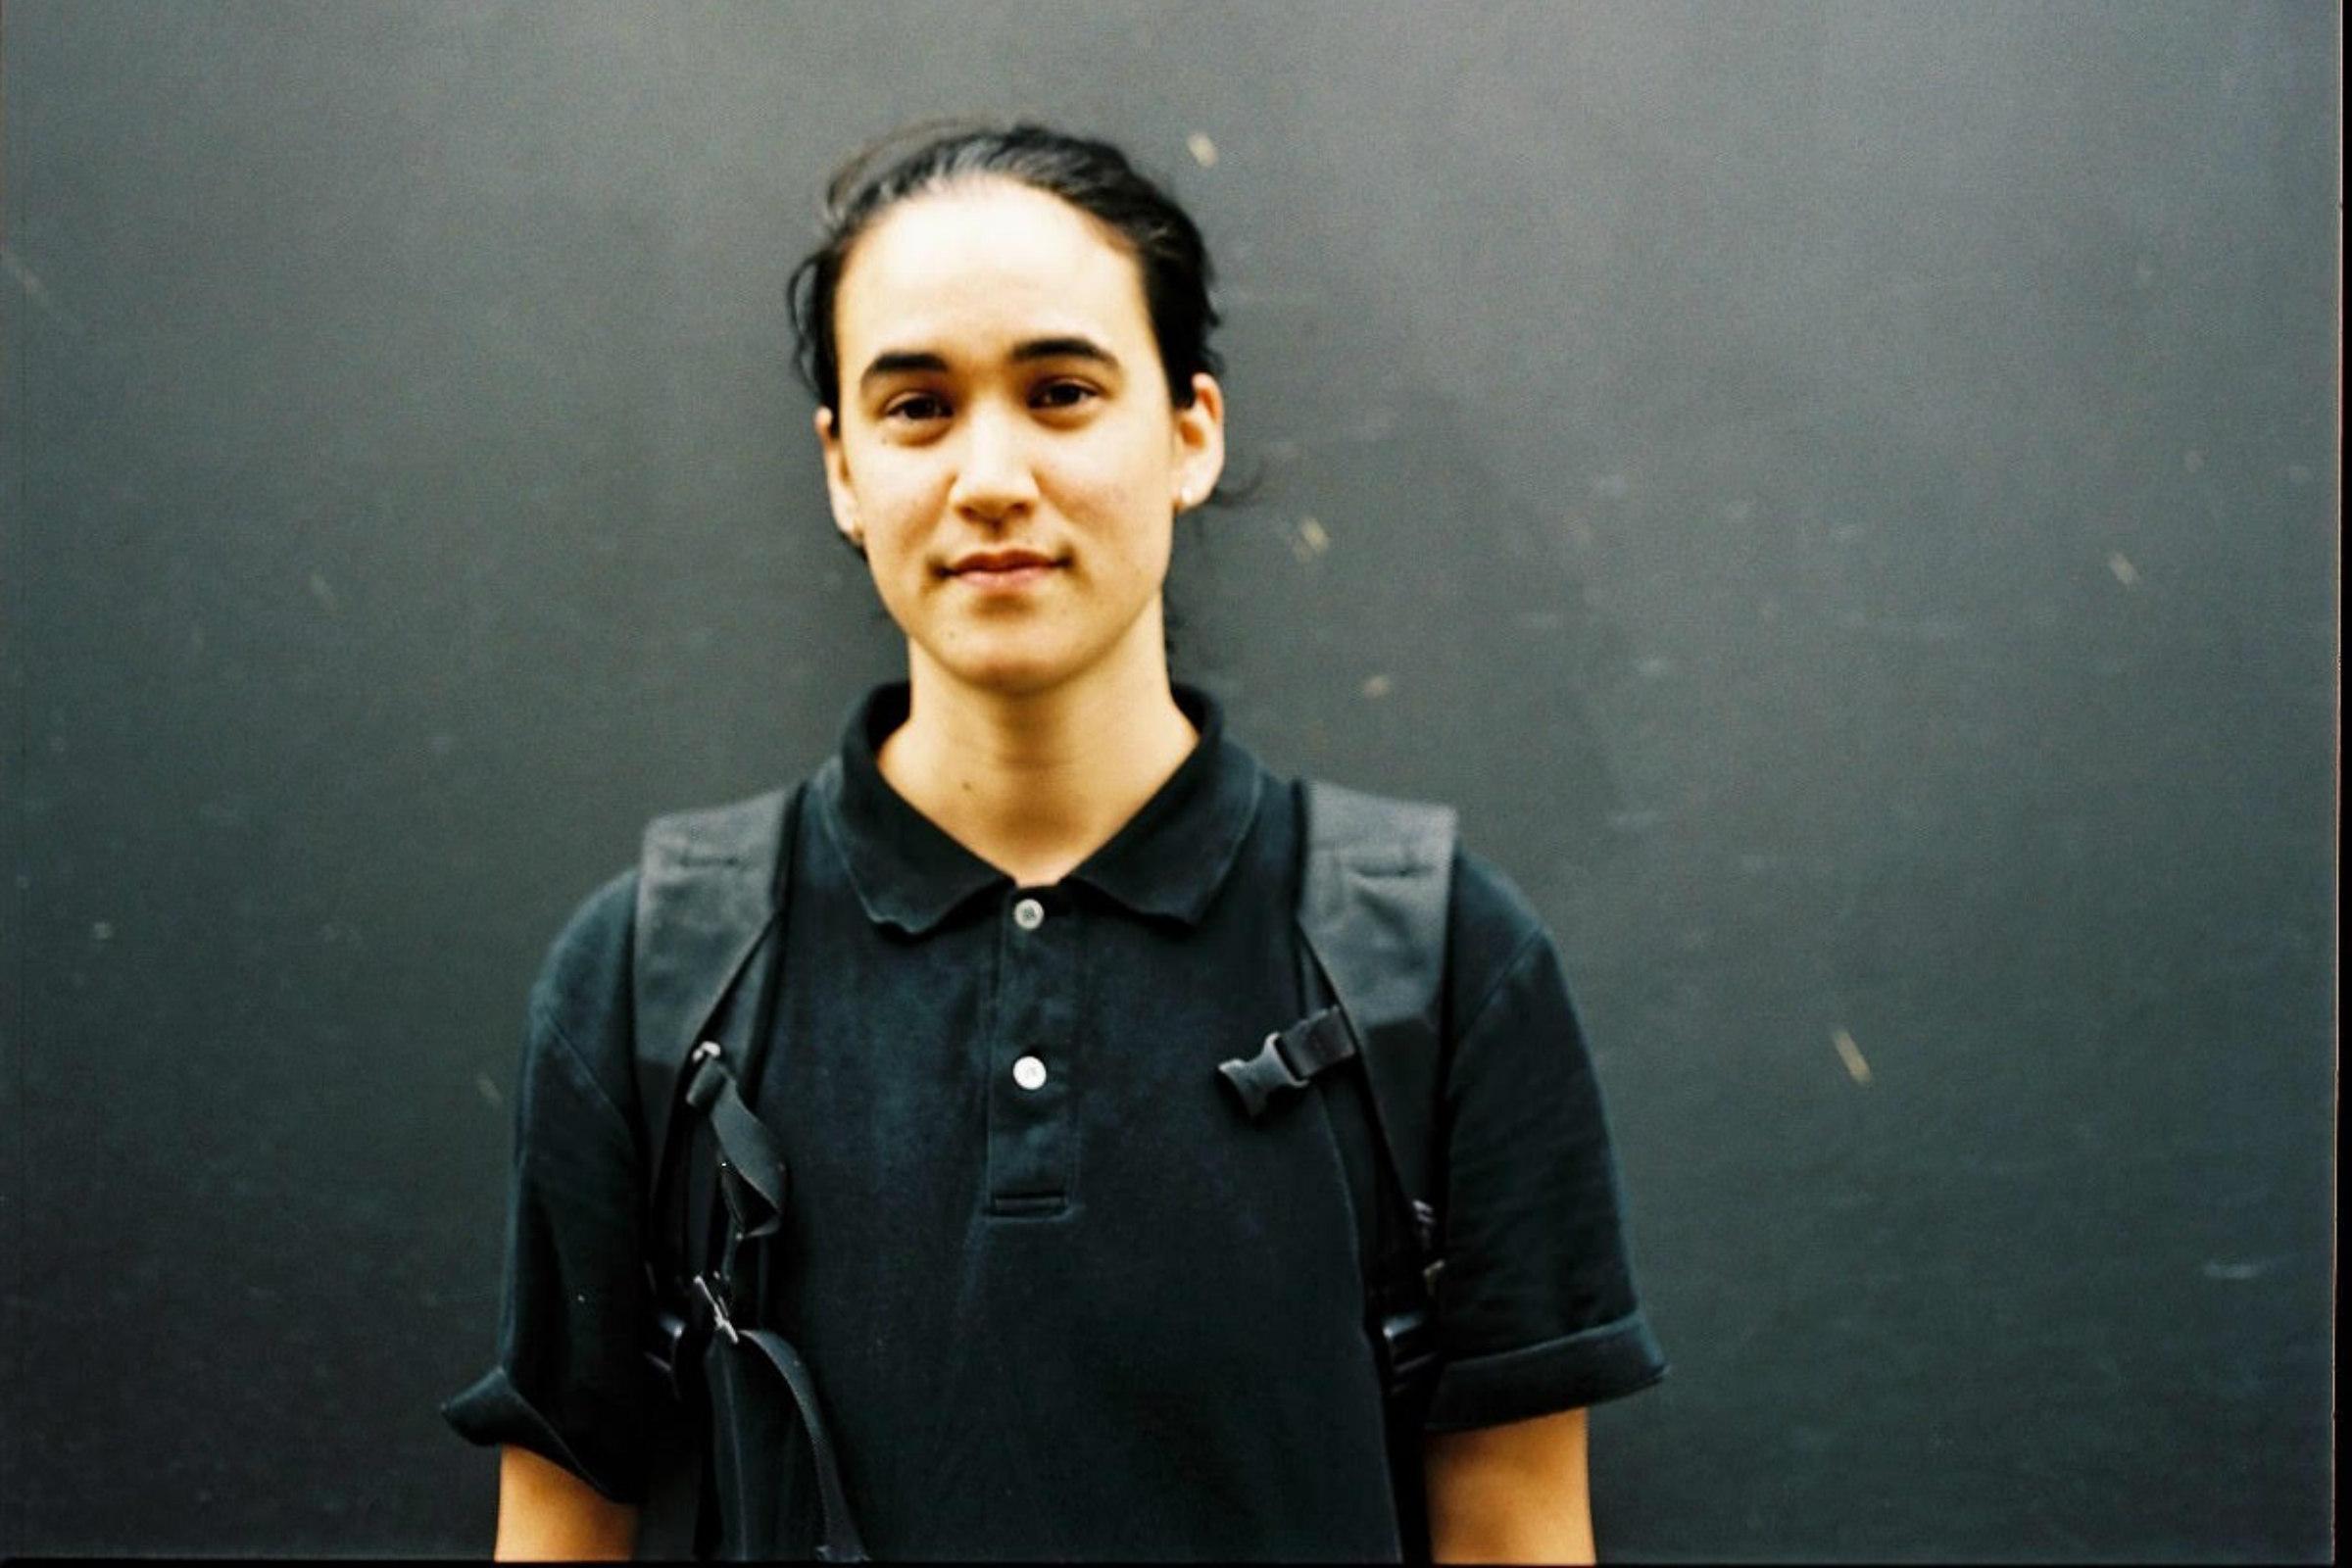 Lee Lai, a young Asian person wears a backpack and polo shirt